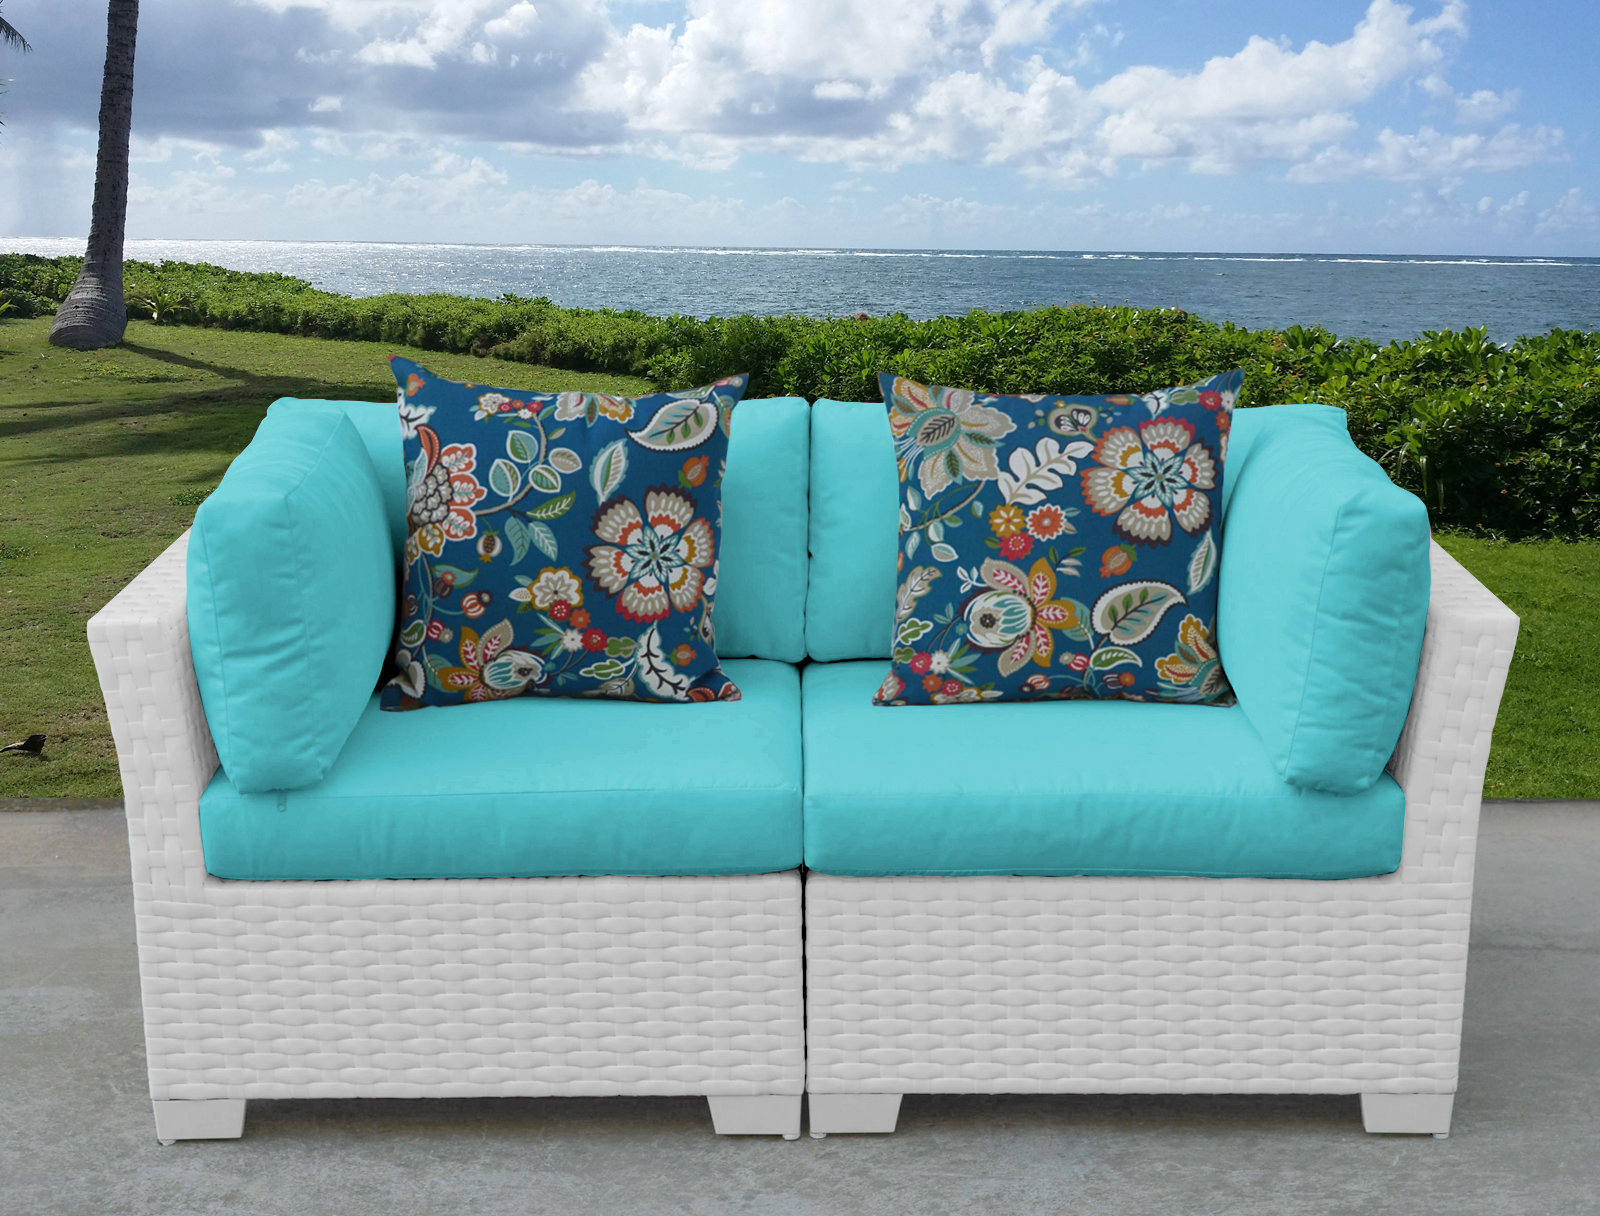 Alburg Loveseats With Cushions Inside Most Recent Monaco Outdoor Loveseat With Cushions (View 4 of 25)